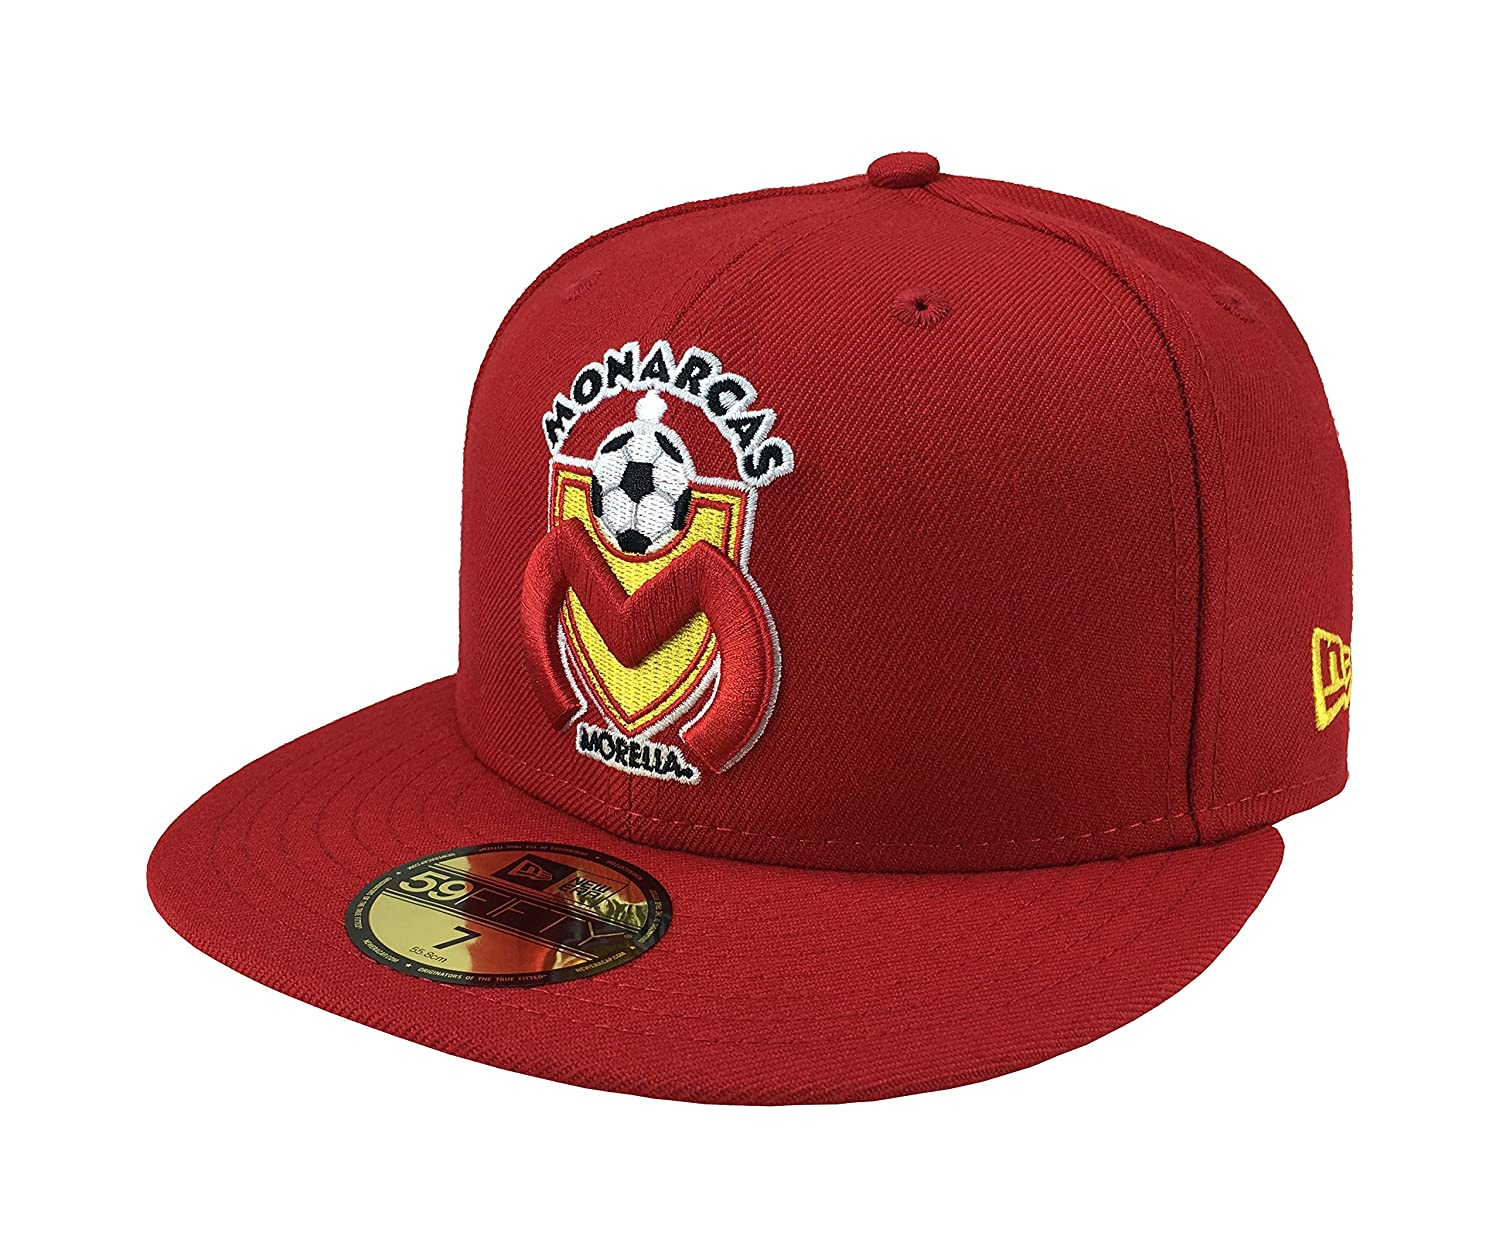 New Era 59Fifty Hat Monarcas Morelia Michoacan Liga Mexicana Soccer Red Fitted Cap at Amazon Mens Clothing store: